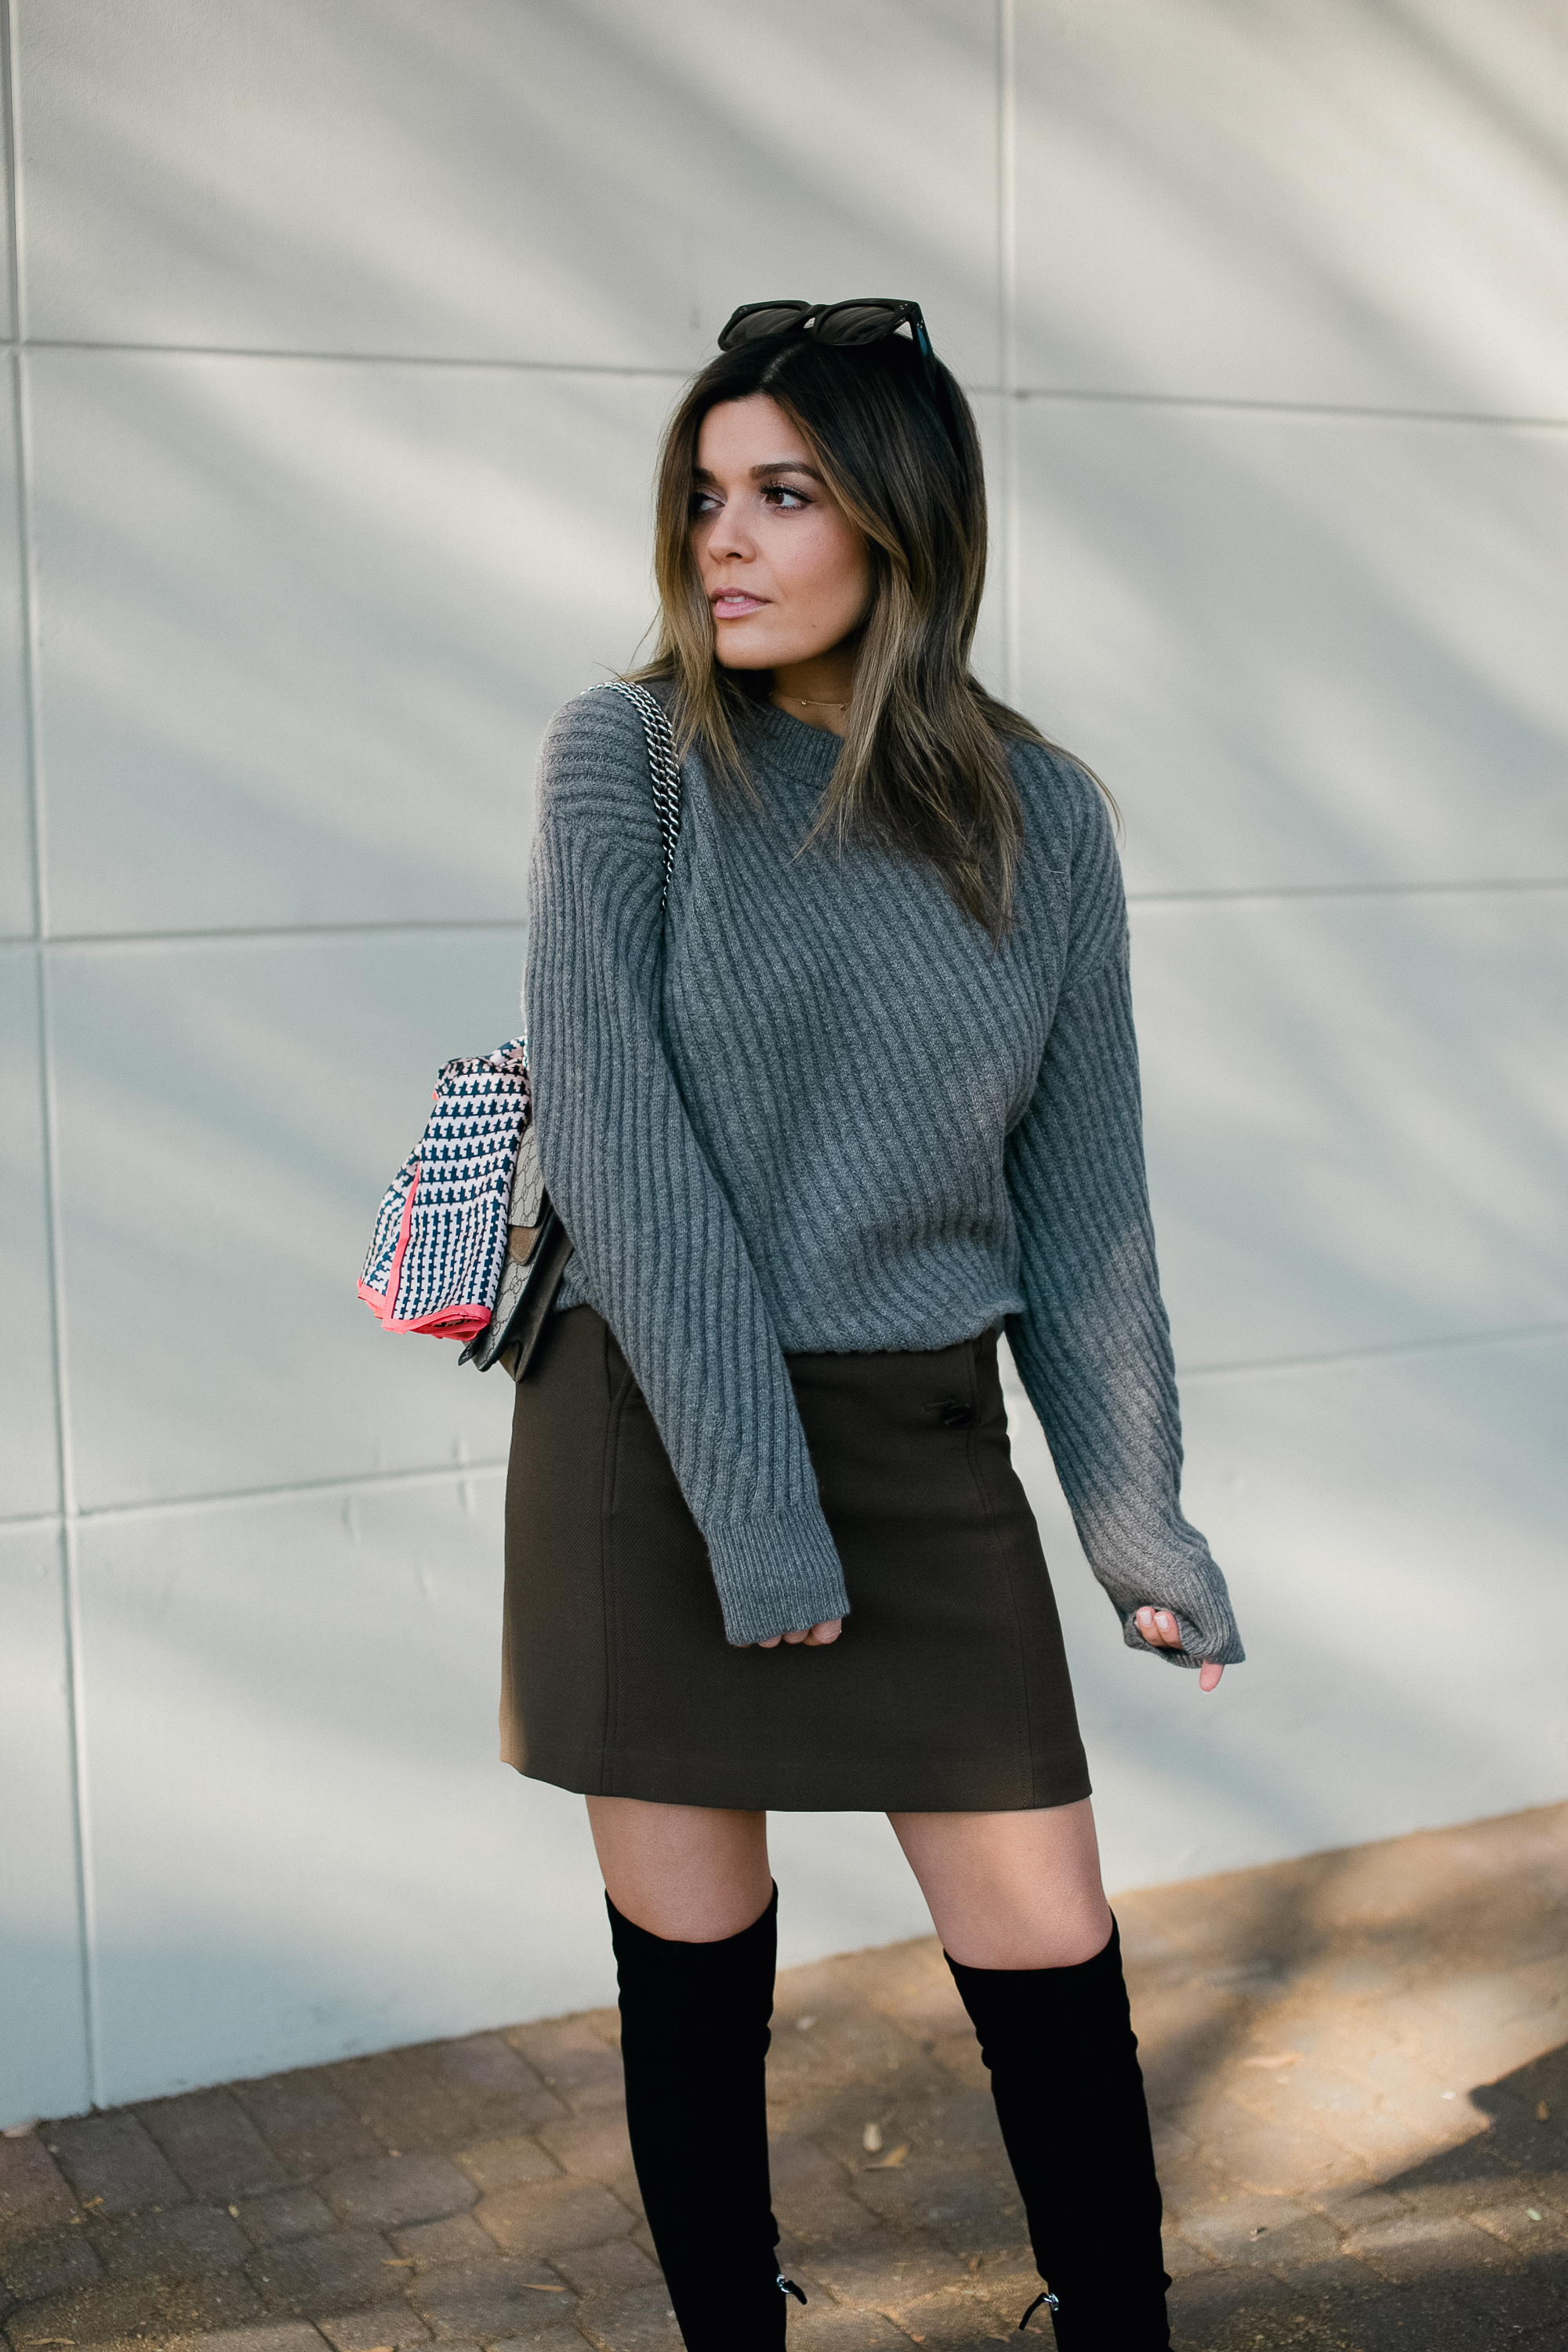 Blogger Sara Azani of Style MBA wears an Ann Taylor Stitched Cashmere Sweater, Ann Taylor Button Fron A-Line Skirt, Ann Taylor Anna Marie Heeled Suede Boots, and Ann Taylor boardwalk Sunglasses, and Ann Taylor houndstooth Silk Little Scarf from the Ann Taylor Silk Littles Collection.